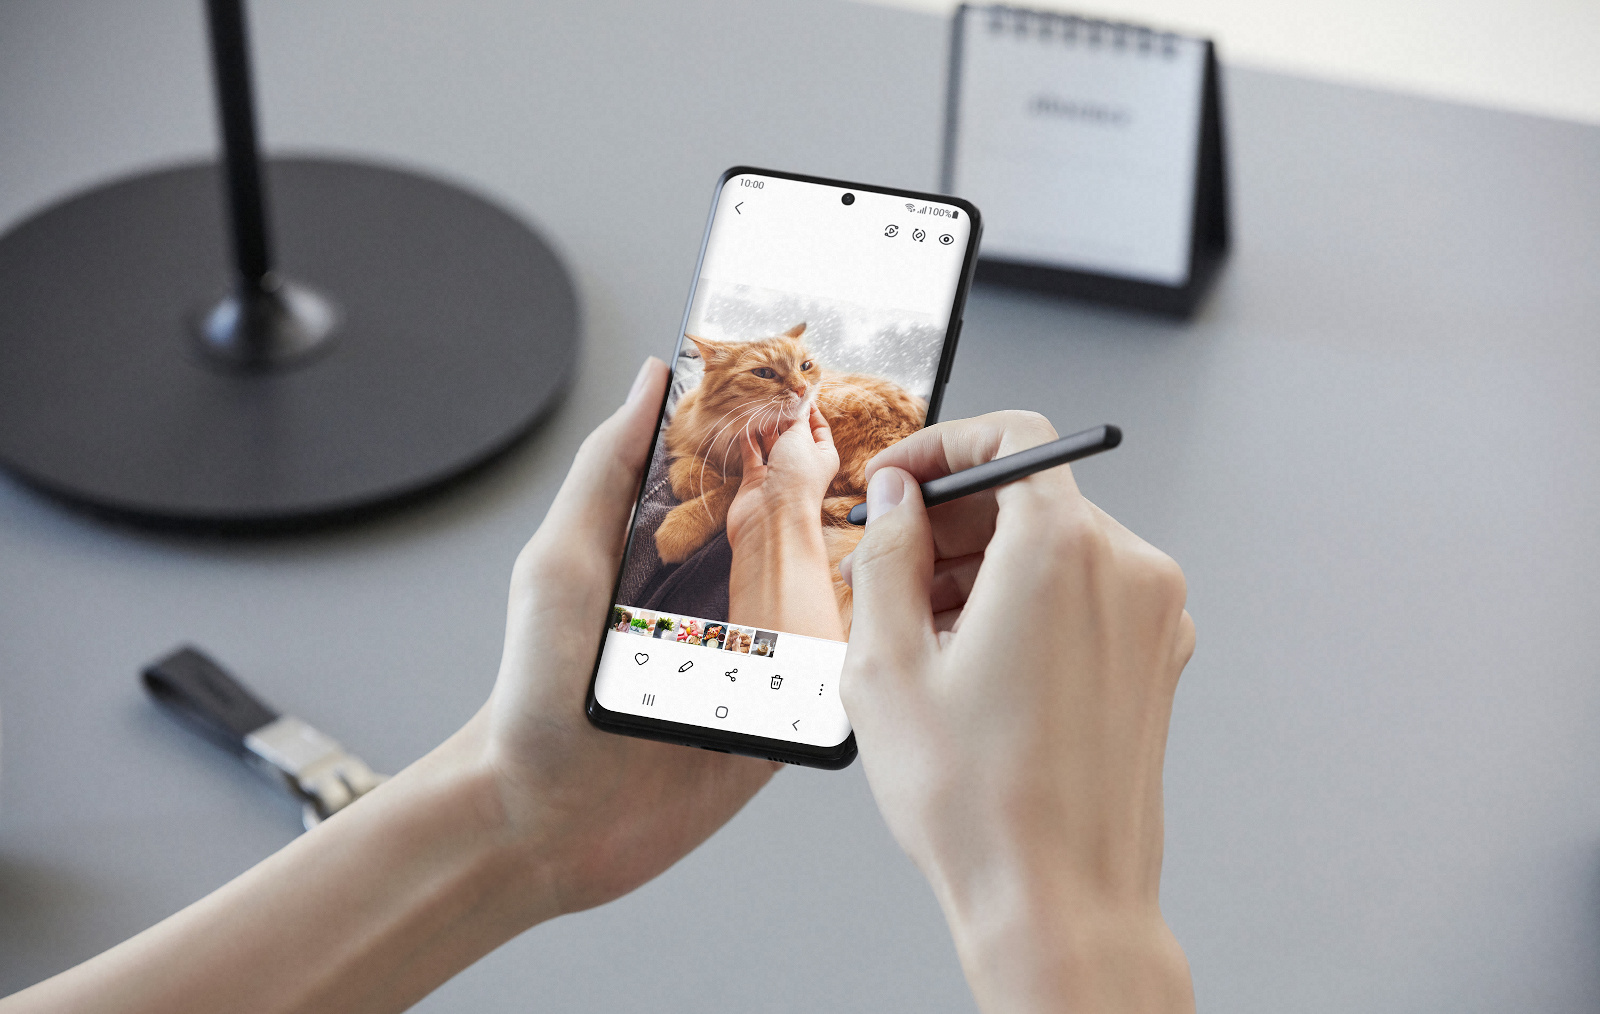 Samsung is expanding S Pen support to more devices